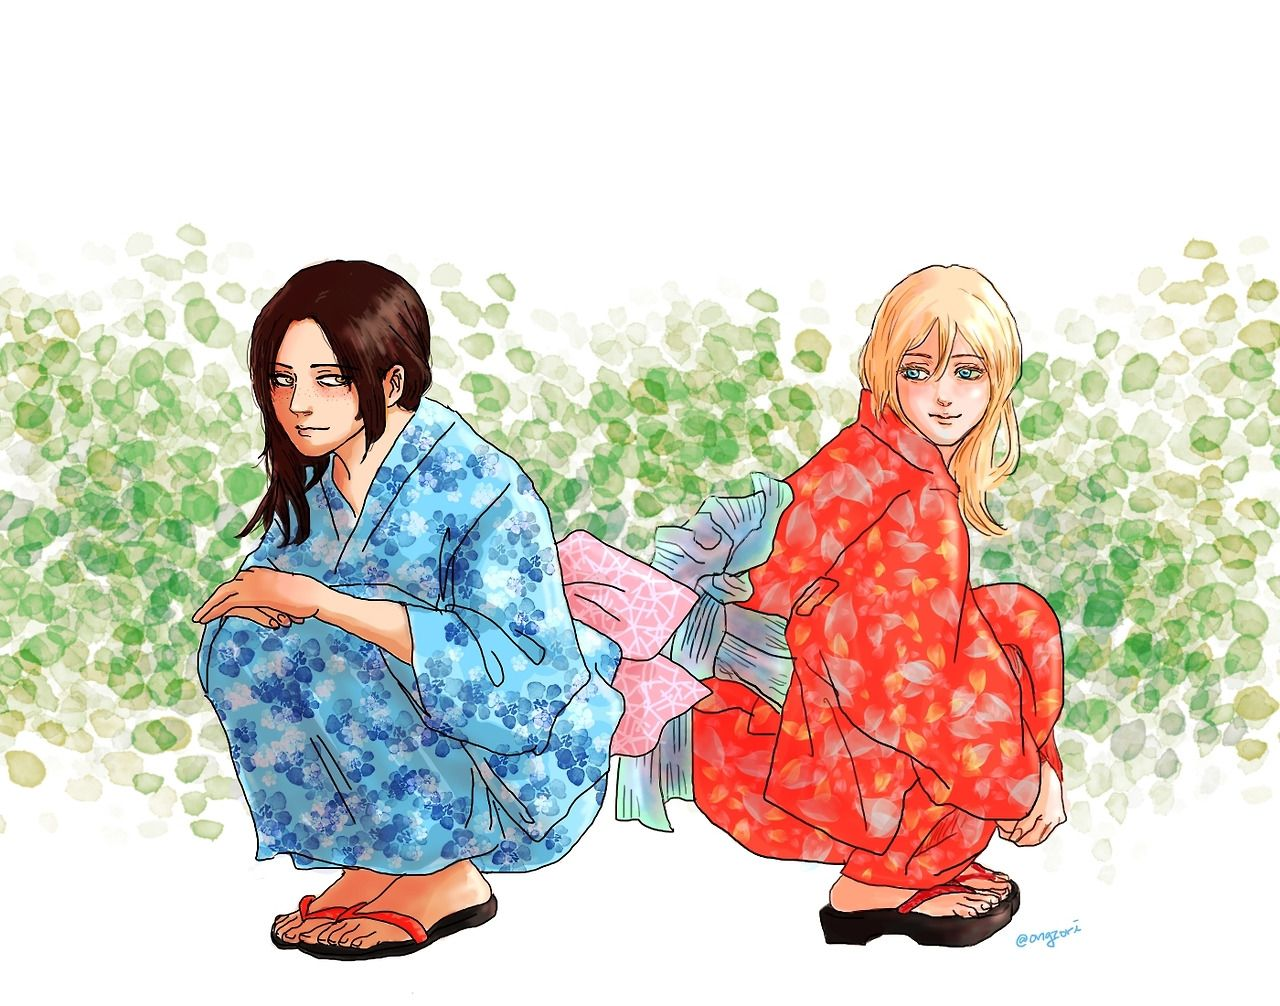 Early summer Ymir&Historia in yukatas Used reference images for Historia